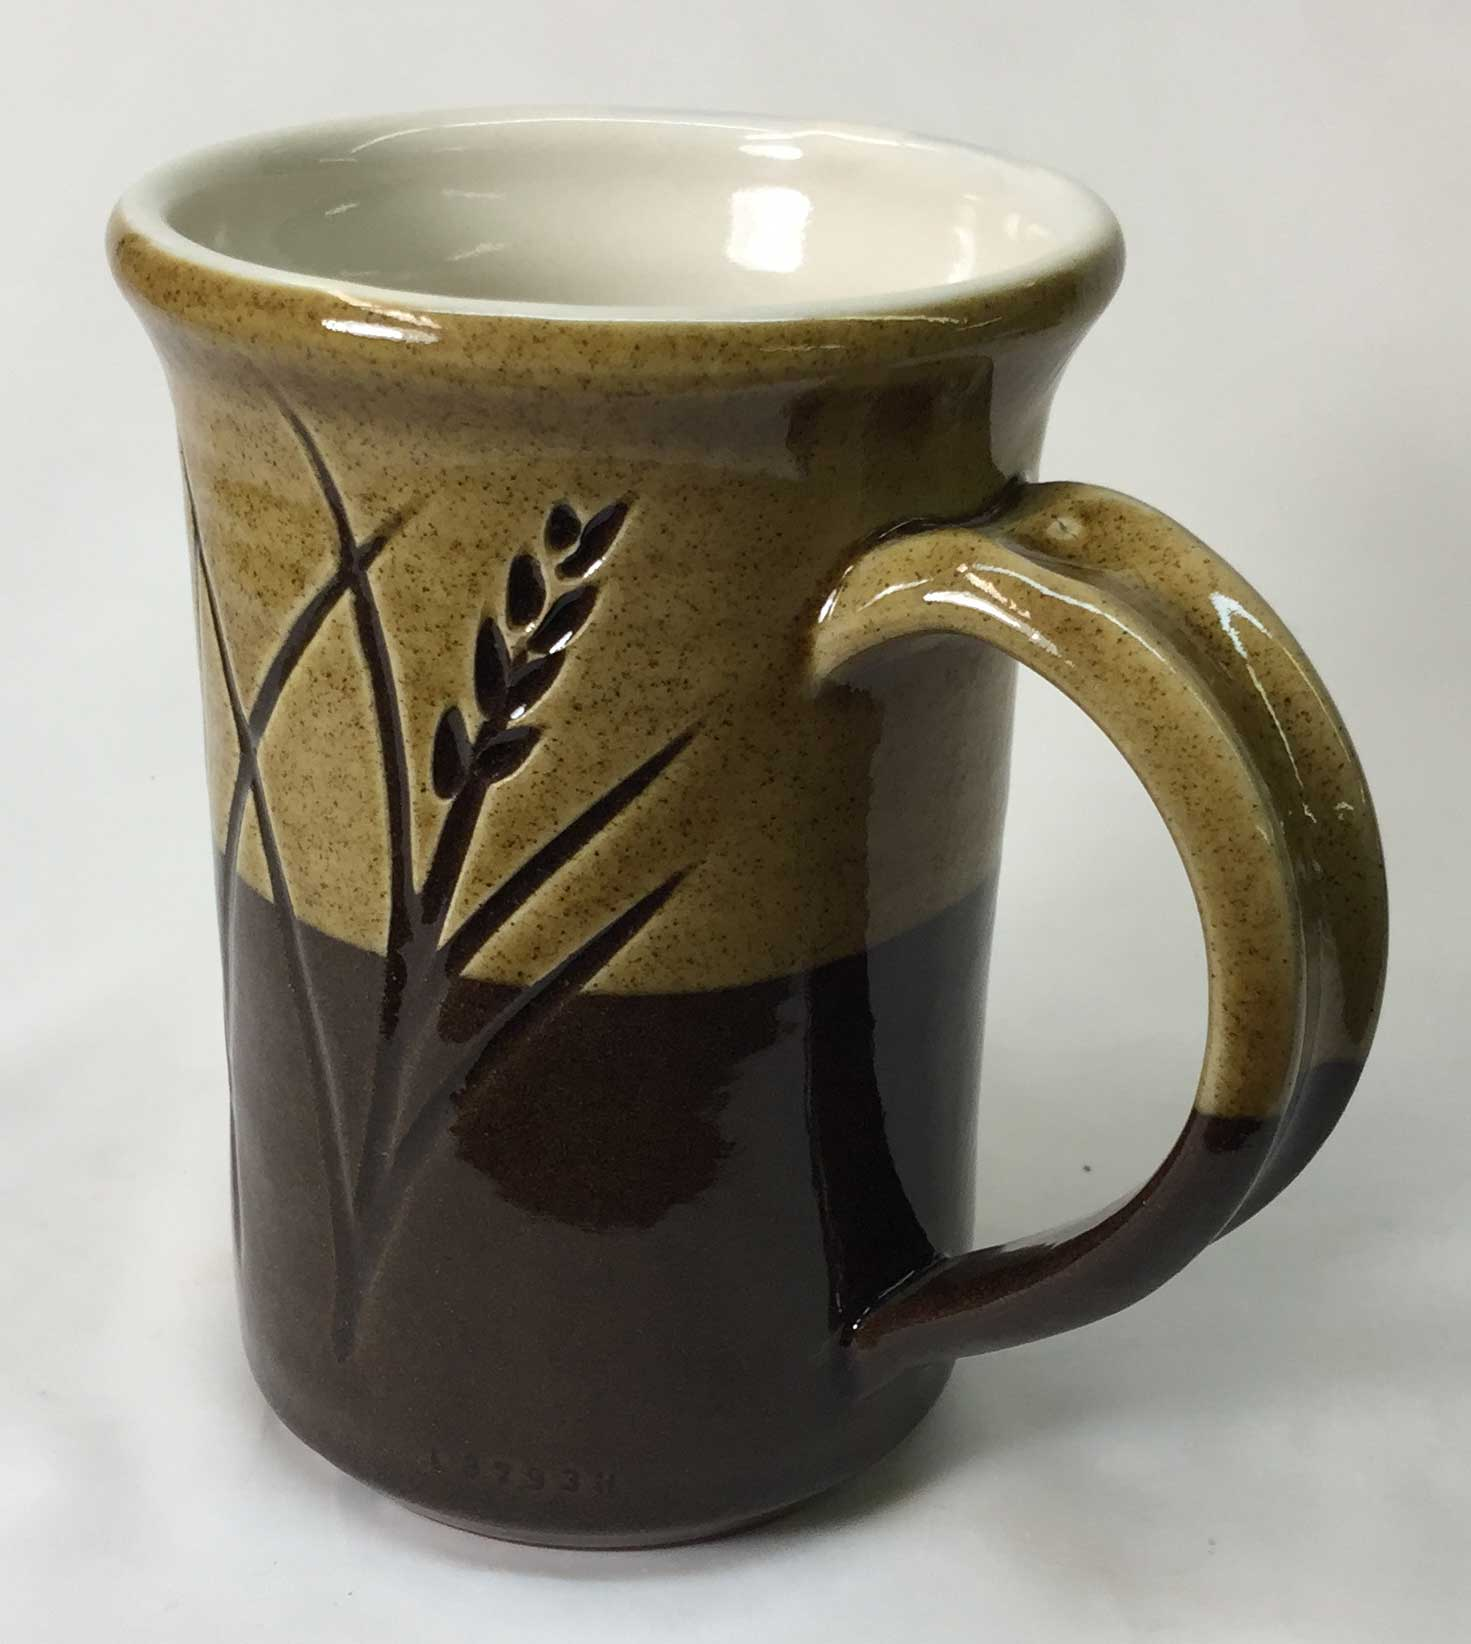 Rich, natural but vibrant colors. How was this cone 6 mug made?